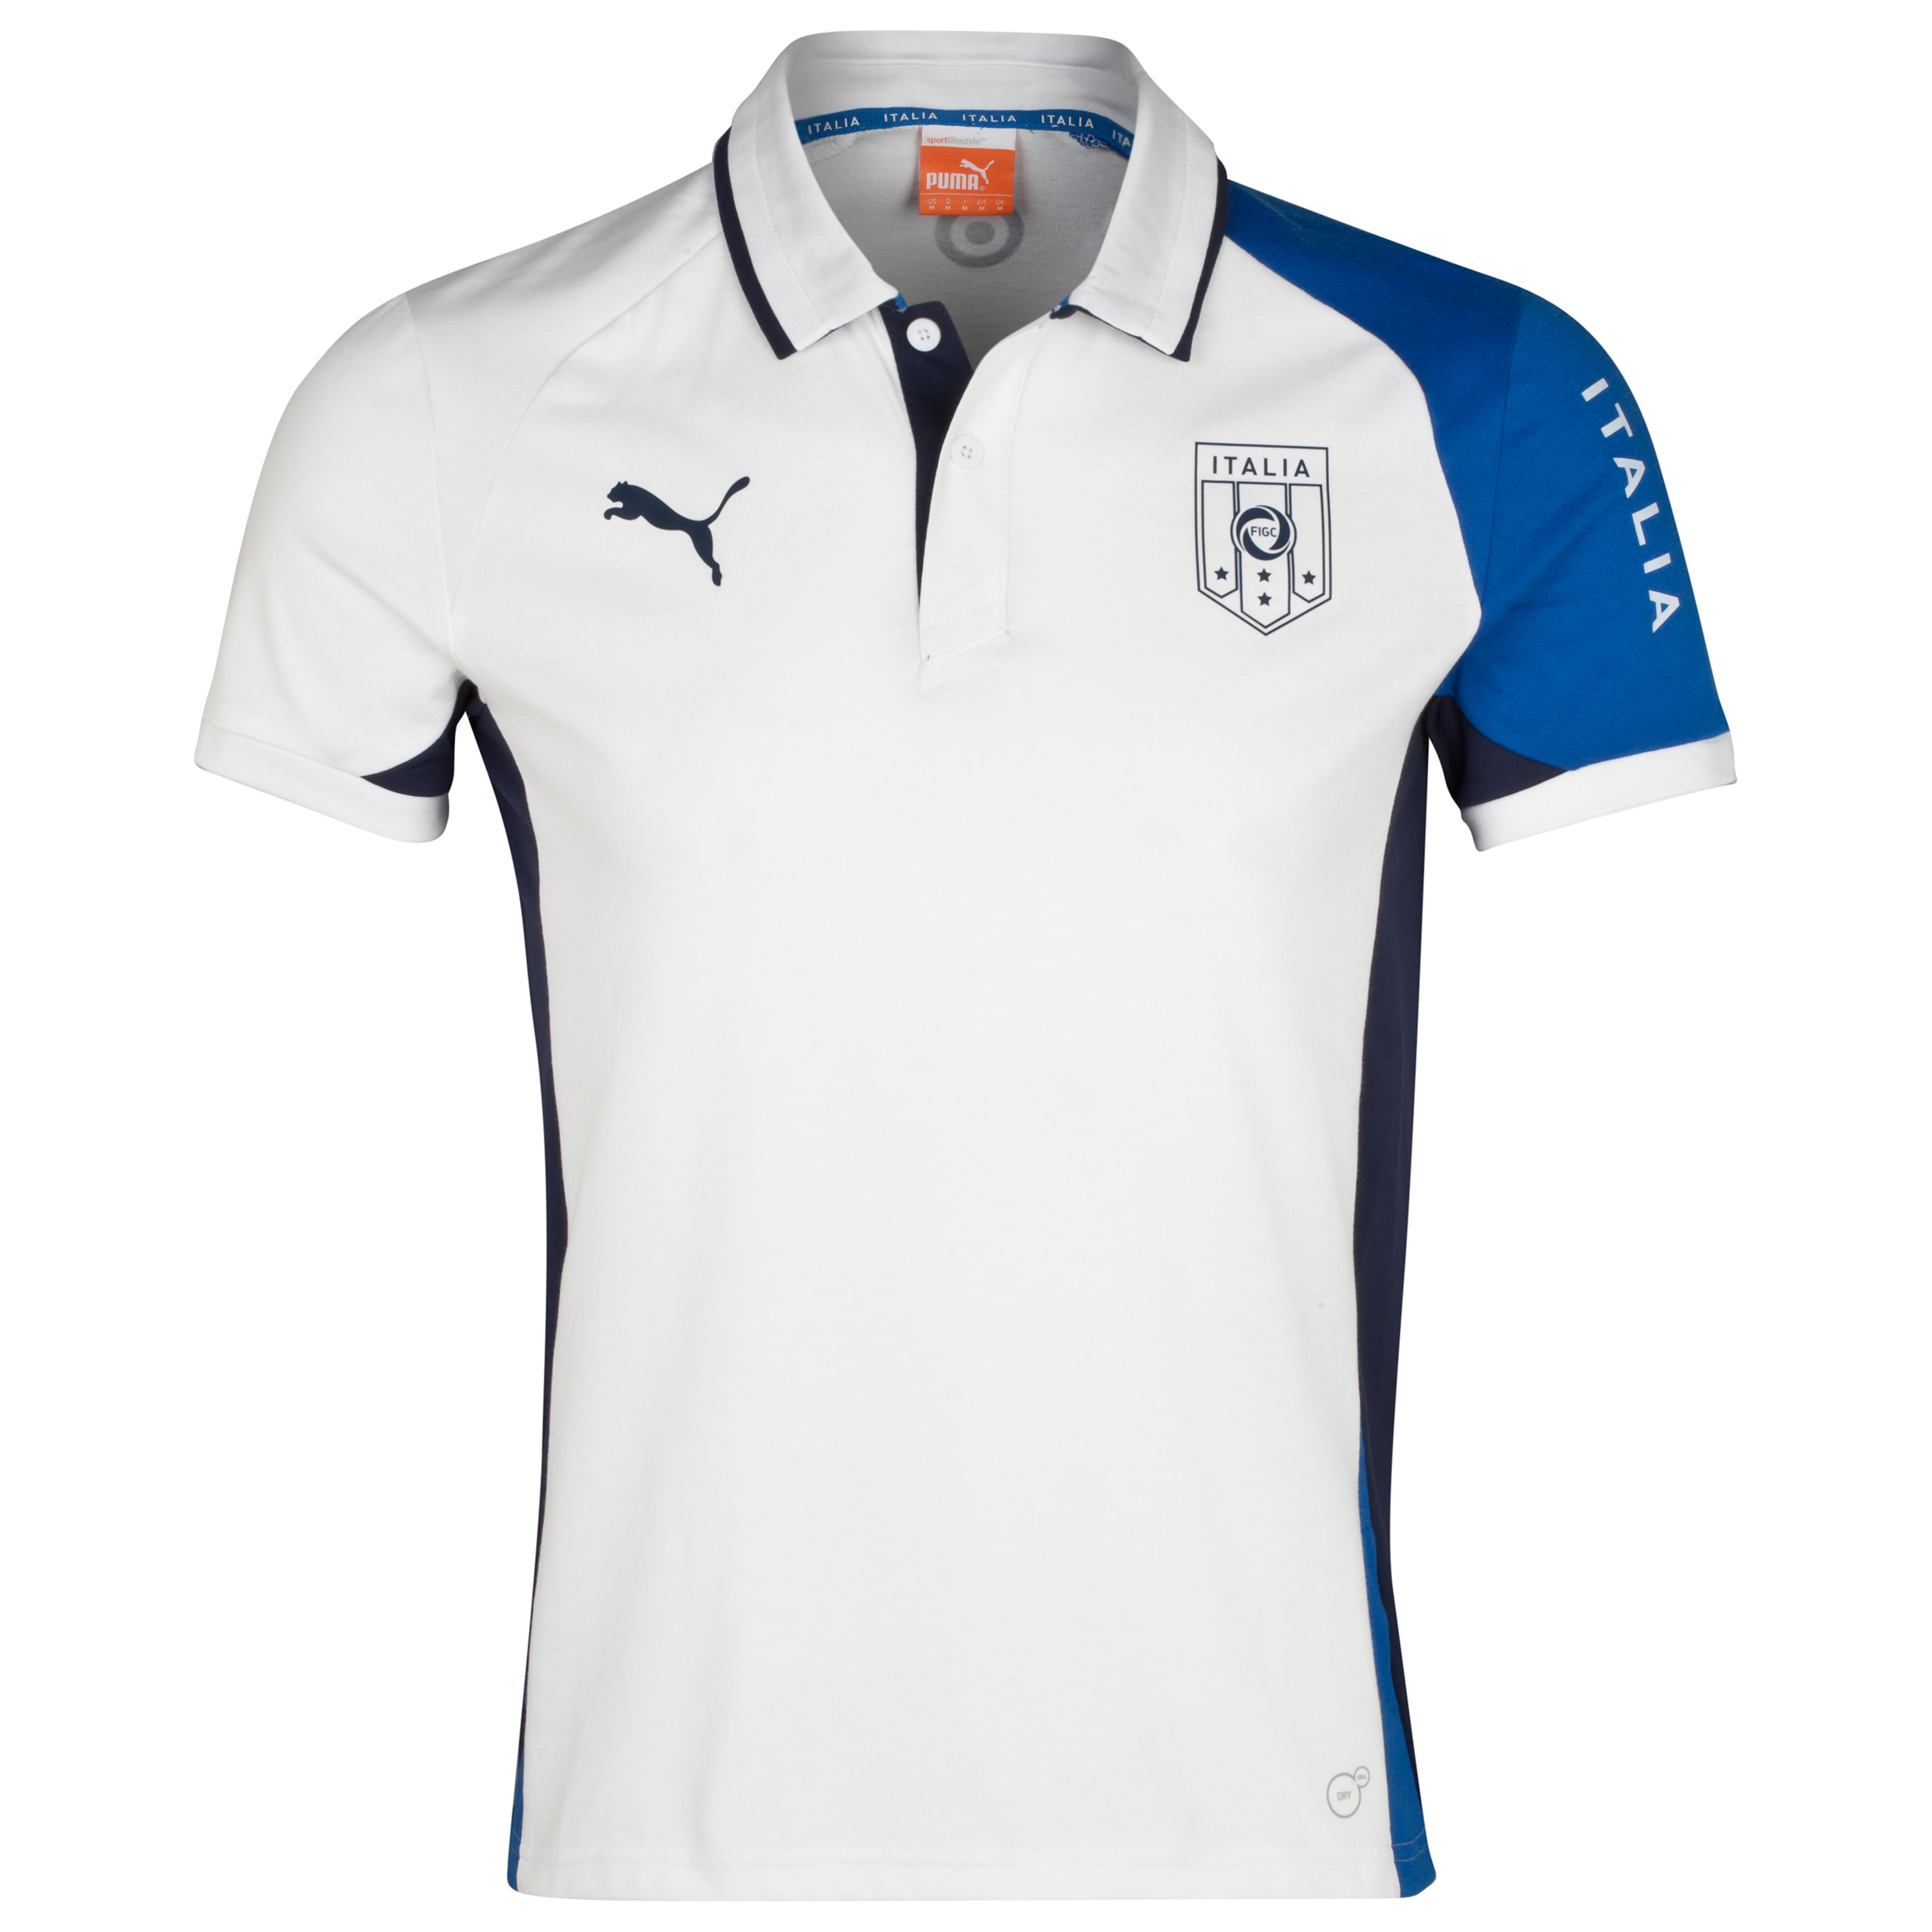 Puma Italy Polo - White/Navy